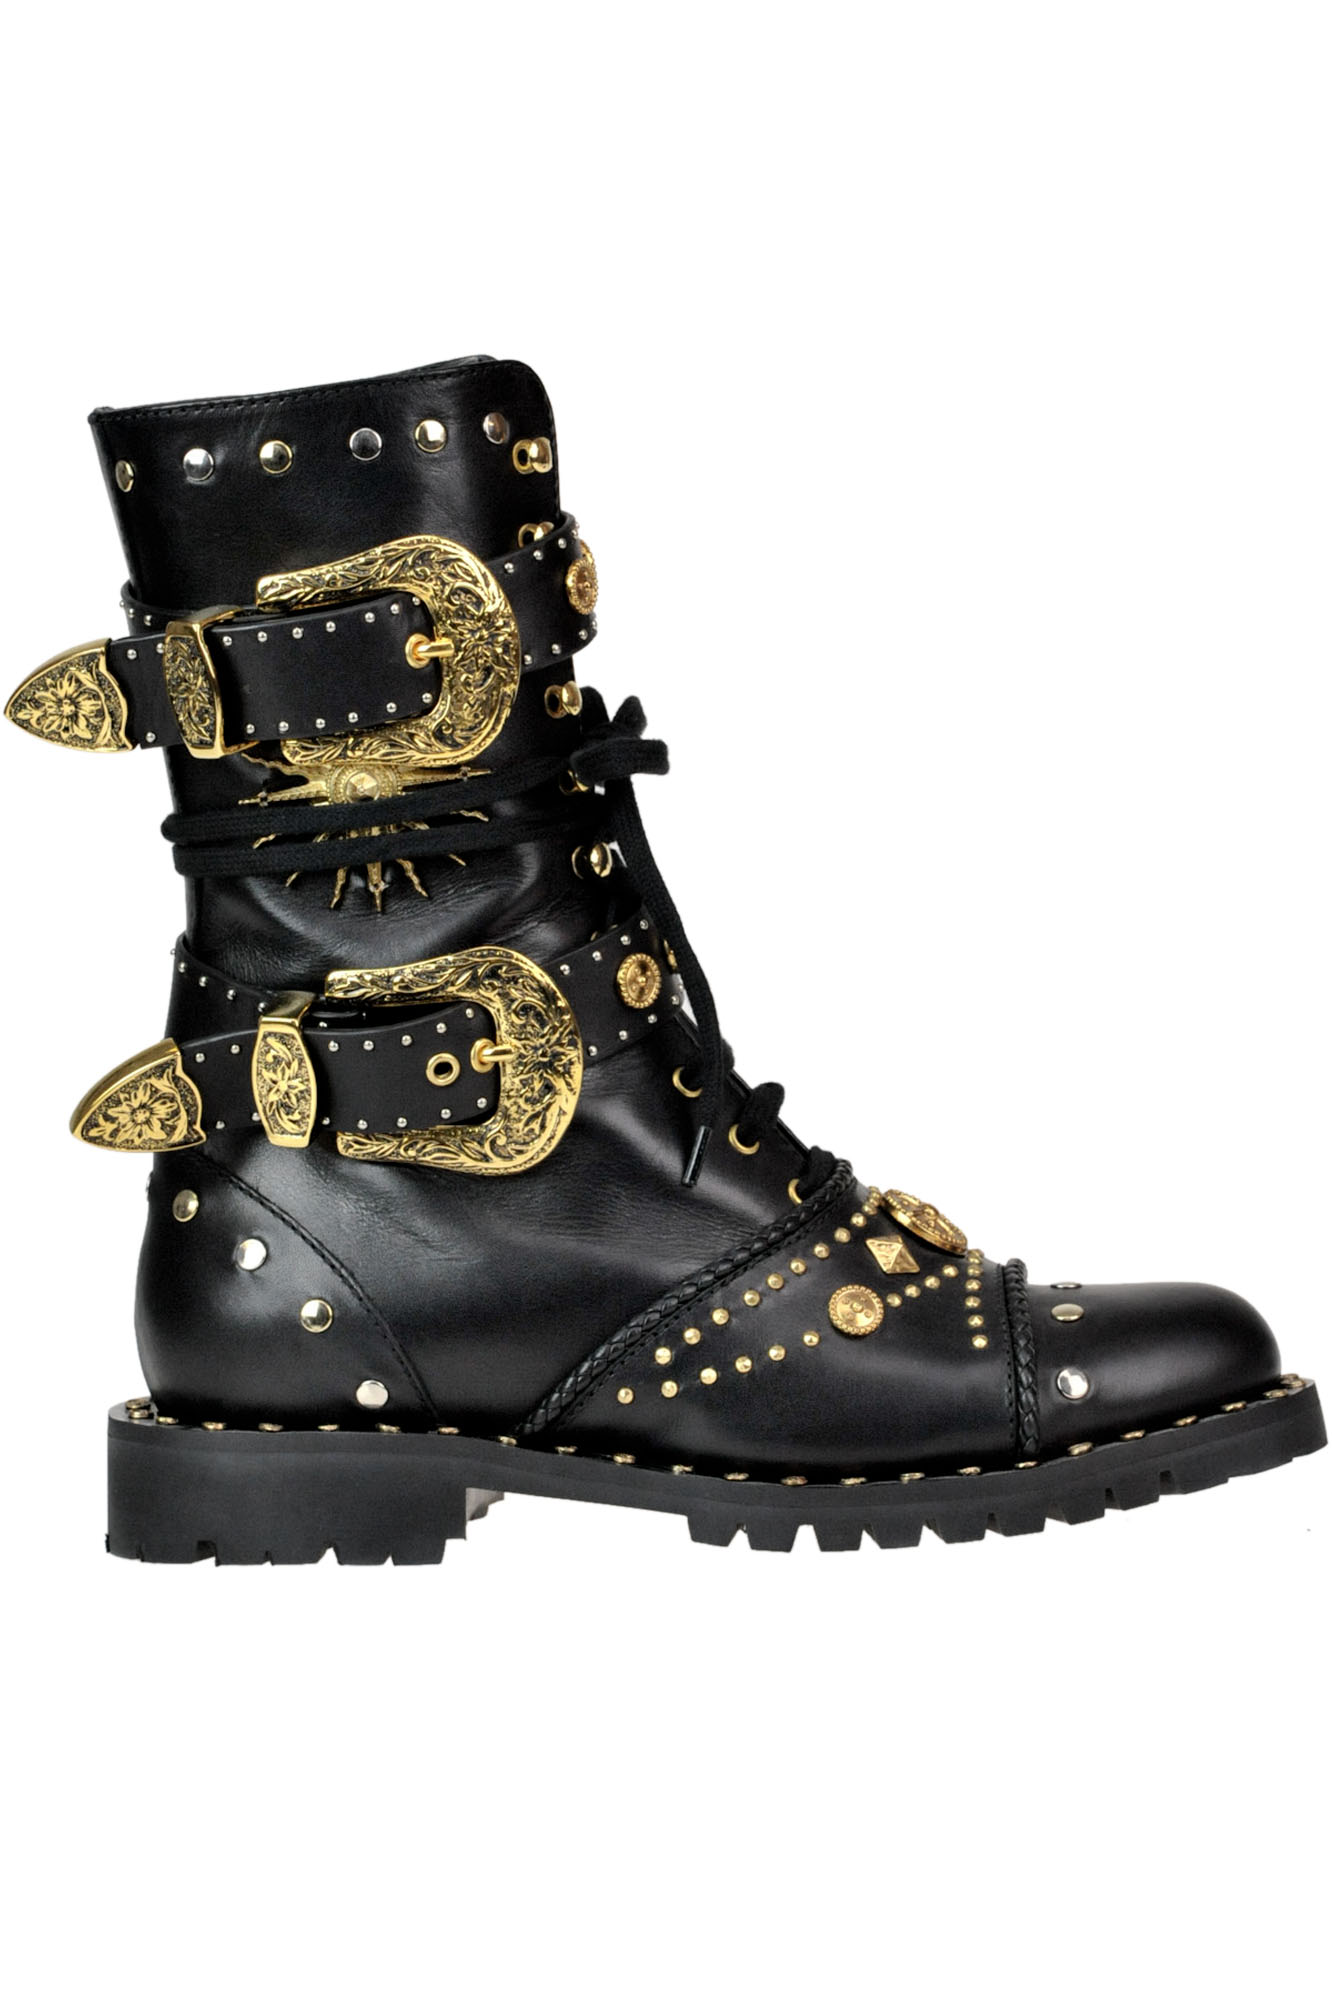 Fausto Puglisi STUDDED LEATHER COMBAT BOOTS